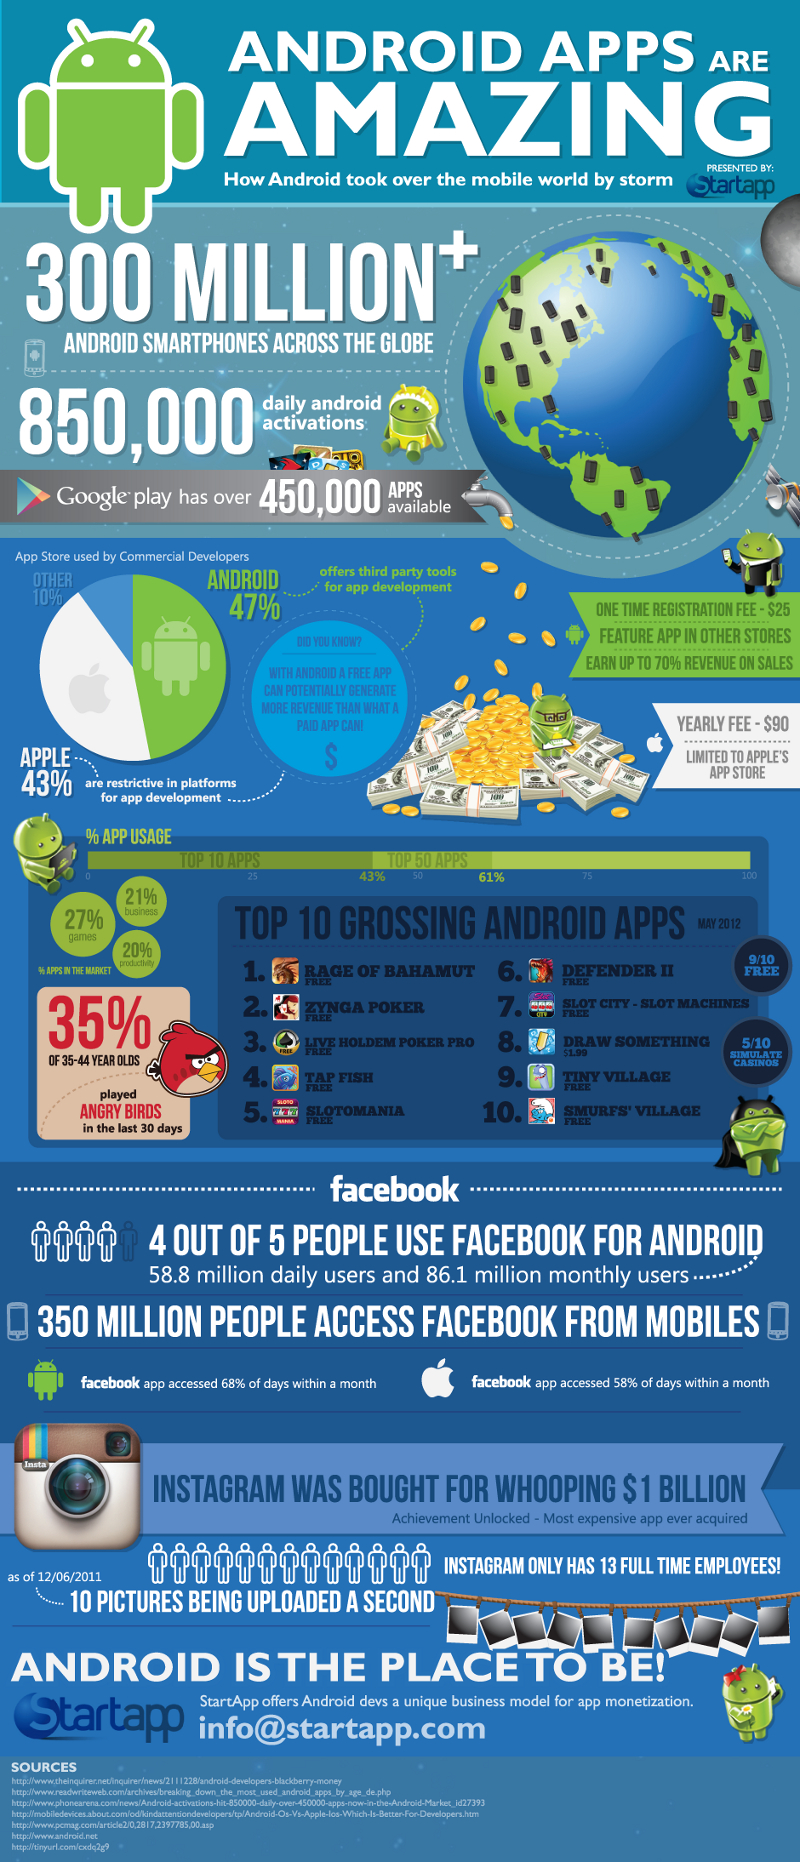 Grossing-Android-Apps